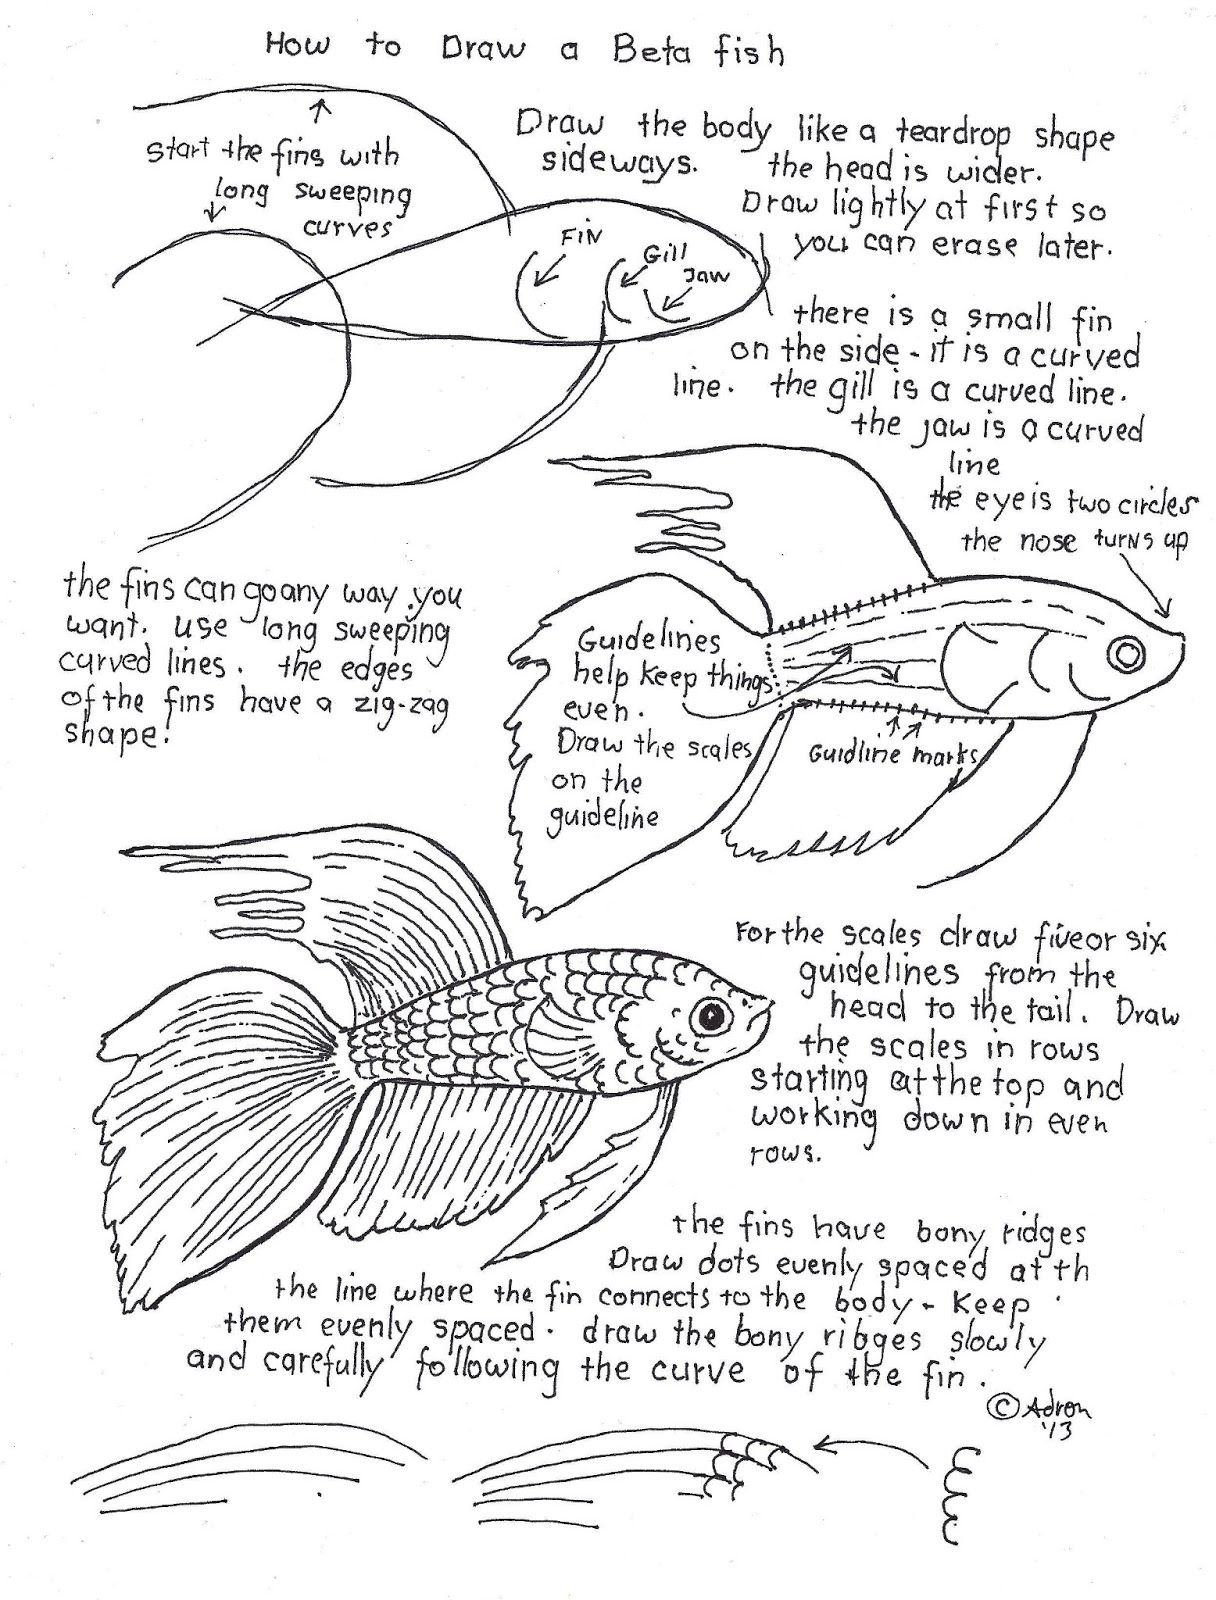 How to draw worksheets for the young artist fish watercolor how to draw worksheets for the young artist how to draw a beta fish worksheet robcynllc Choice Image